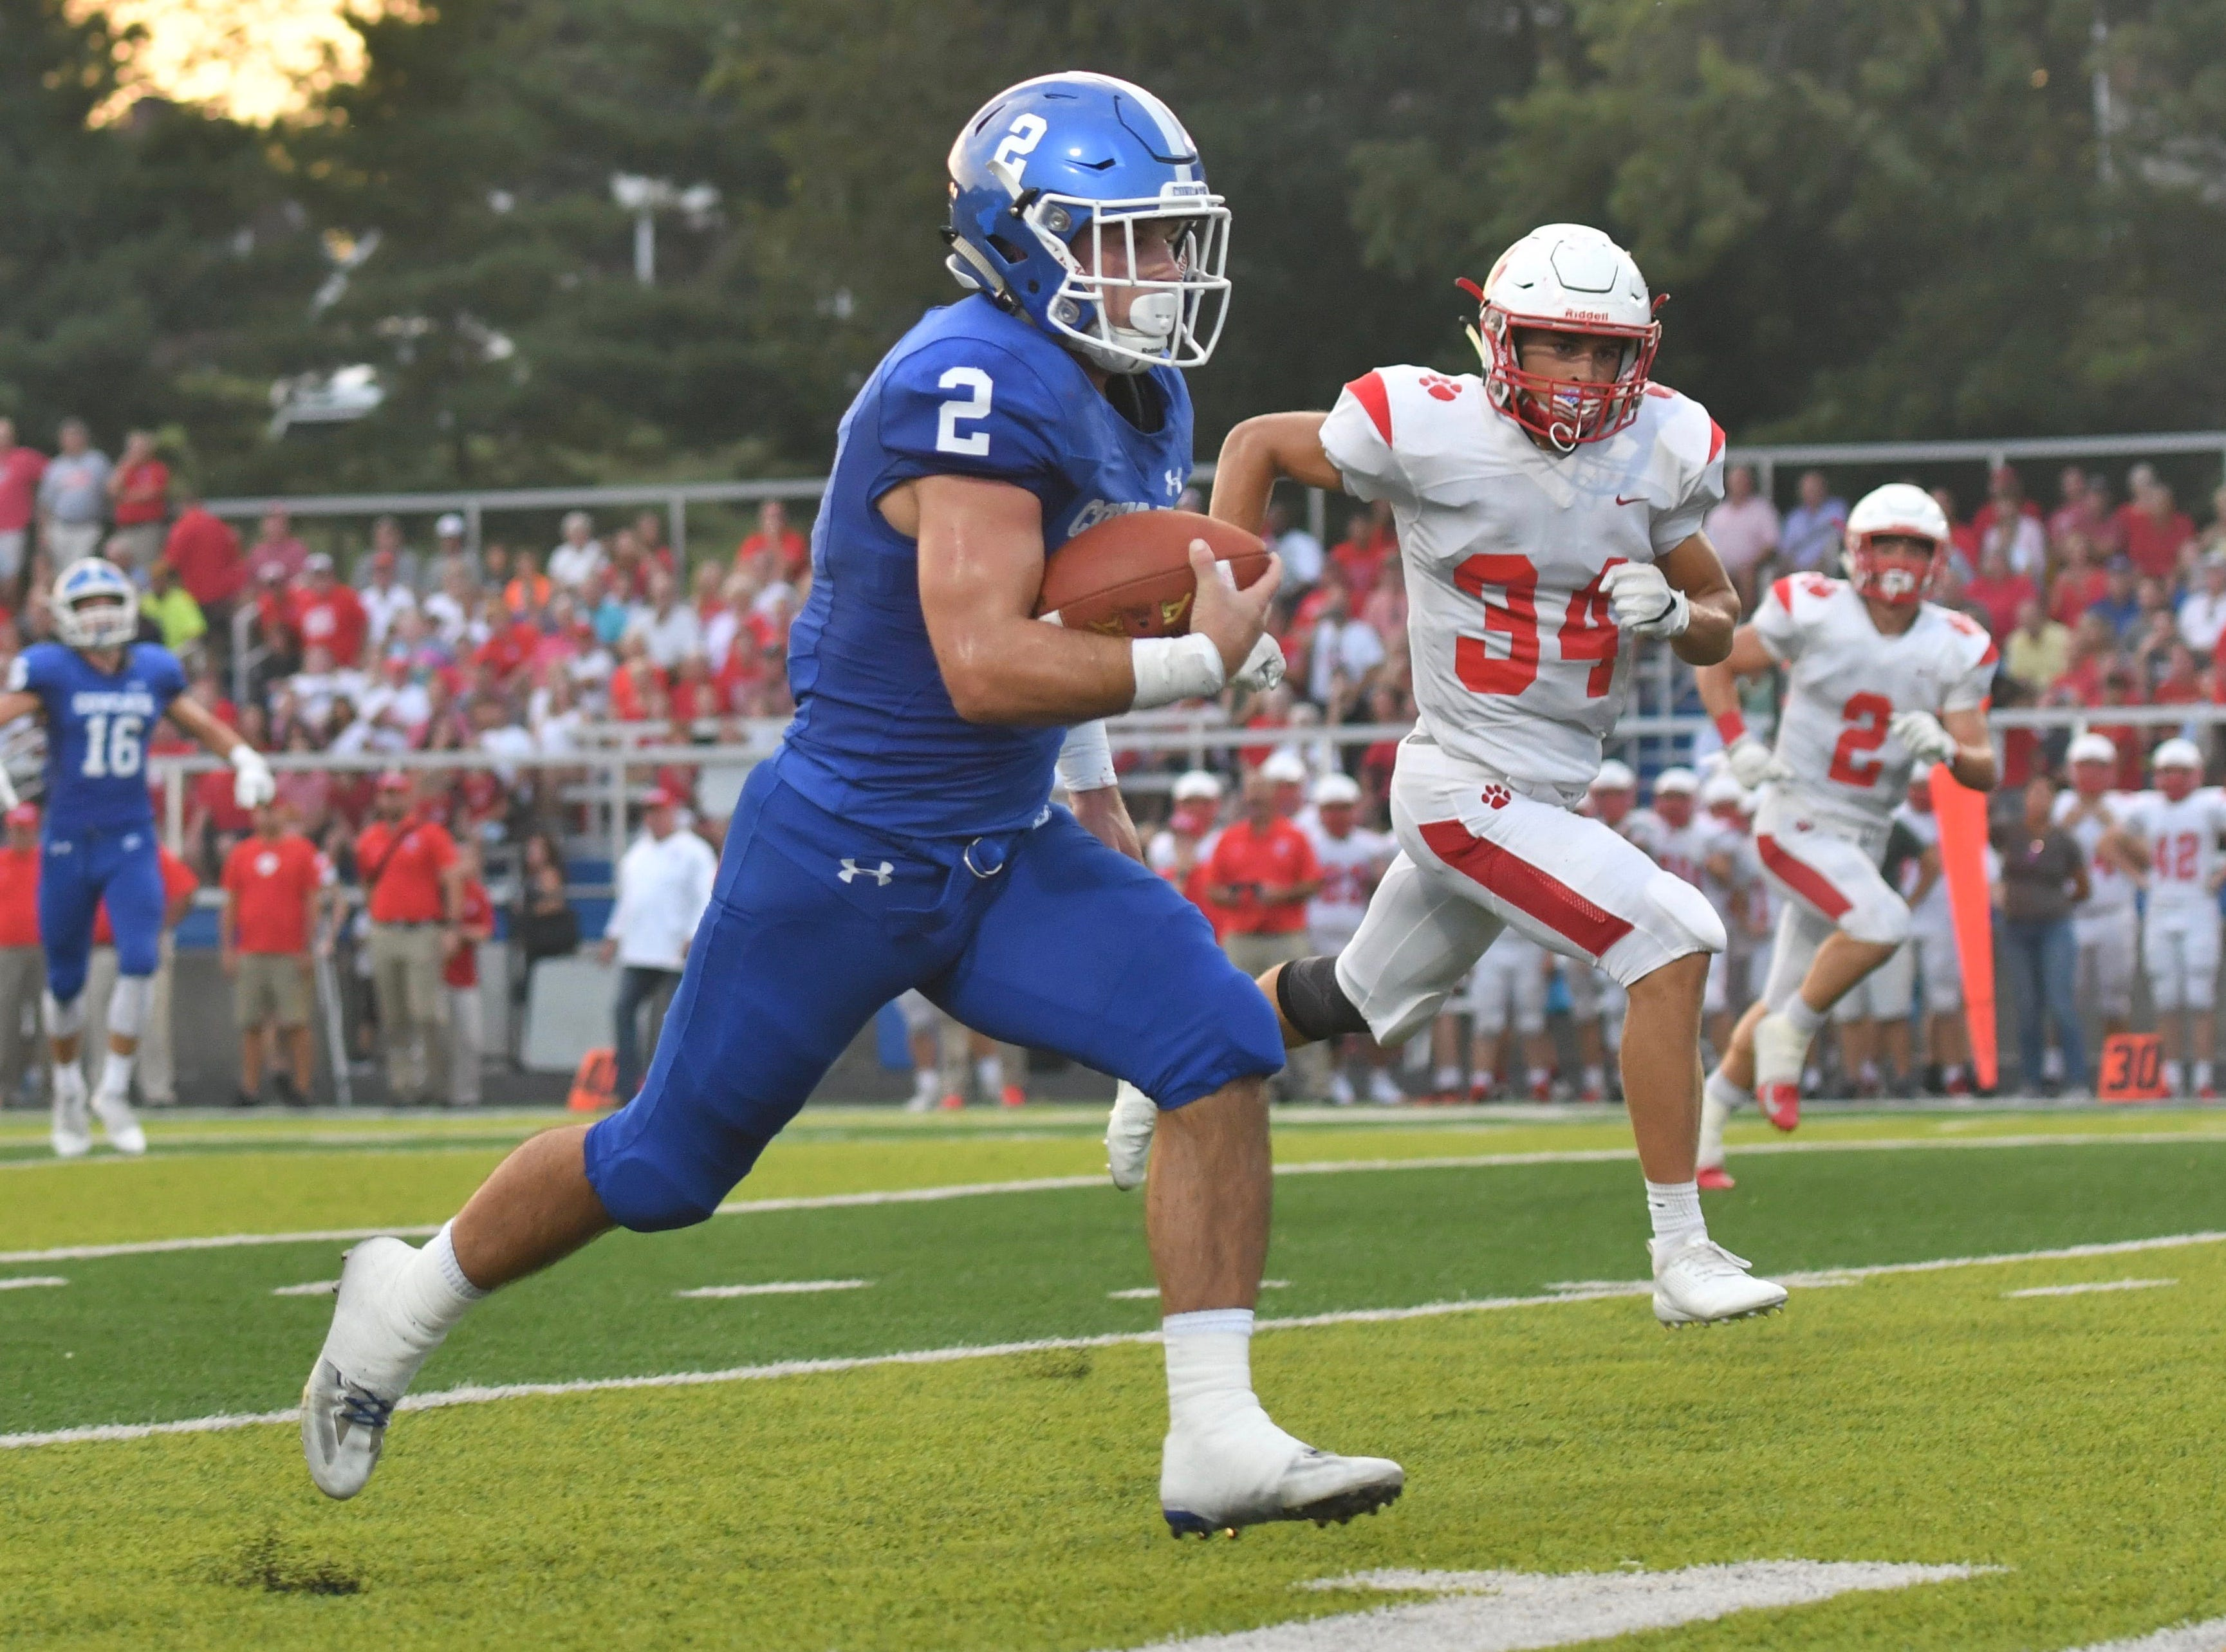 Covington Catholic's Casey McGinness breaks off a long run for a first half touchdown against Beechwood  Friday, Sept. 14, 2018.